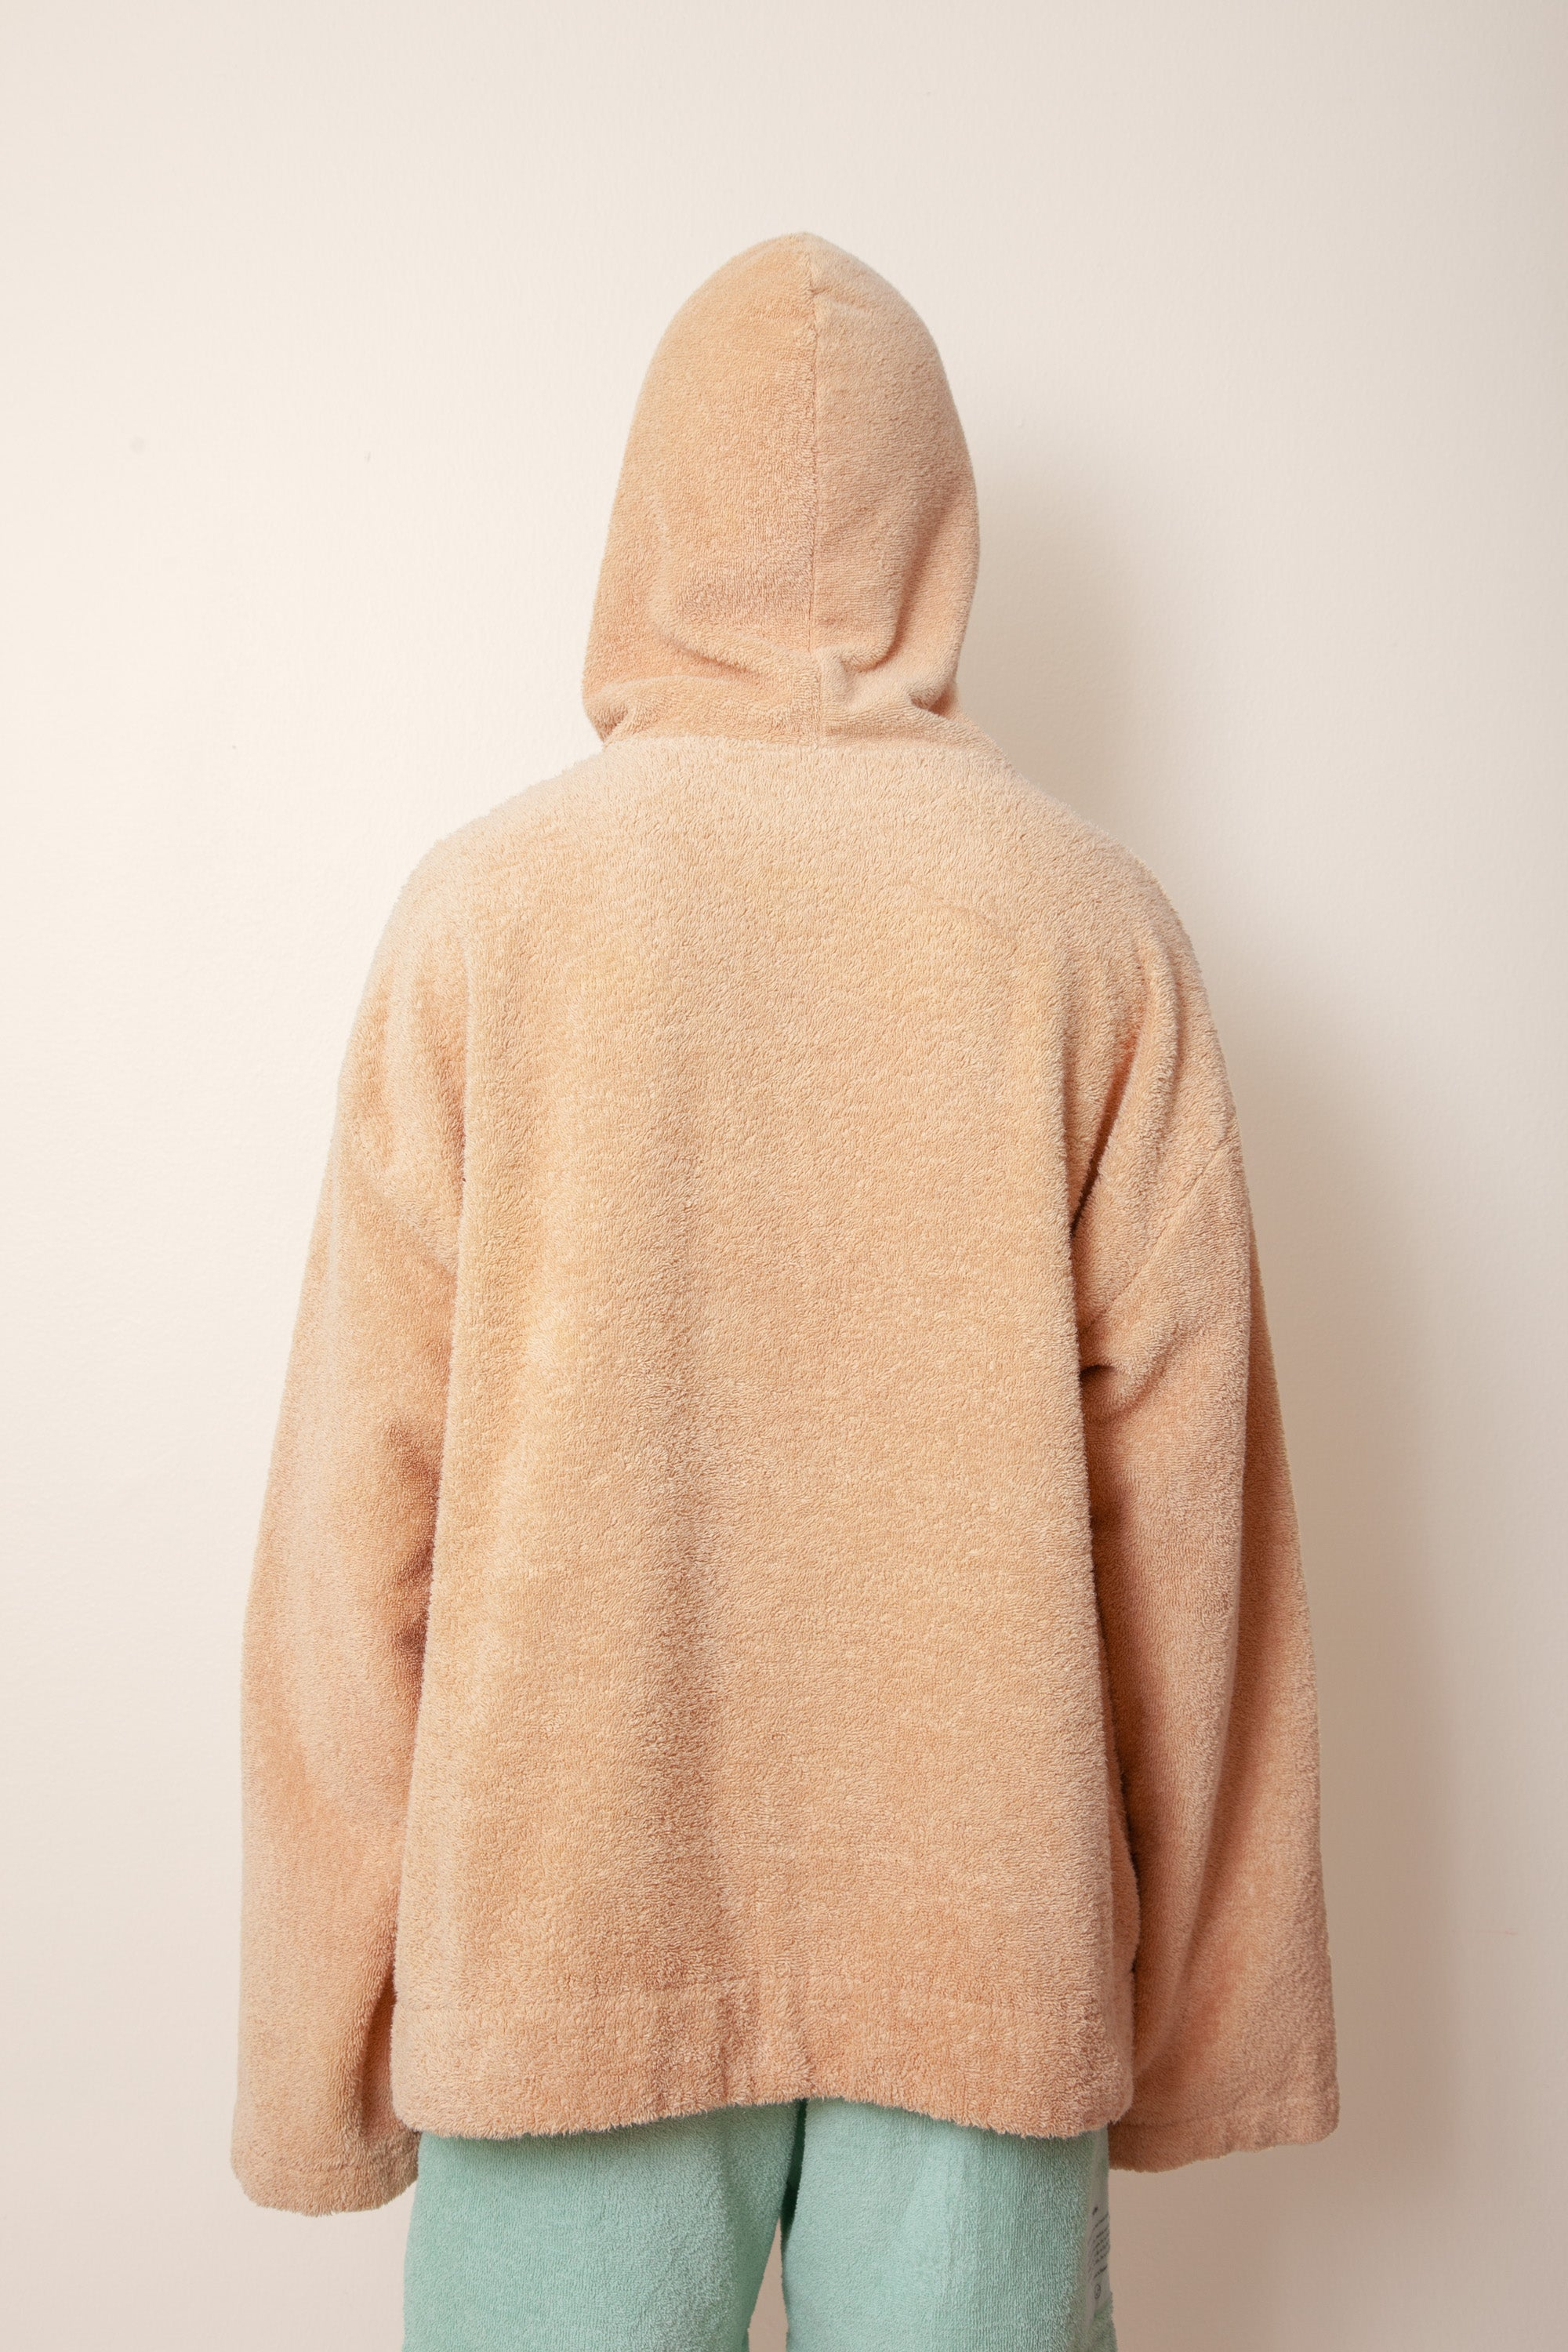 Unisex Oversized Terry Hoodie in Coffee